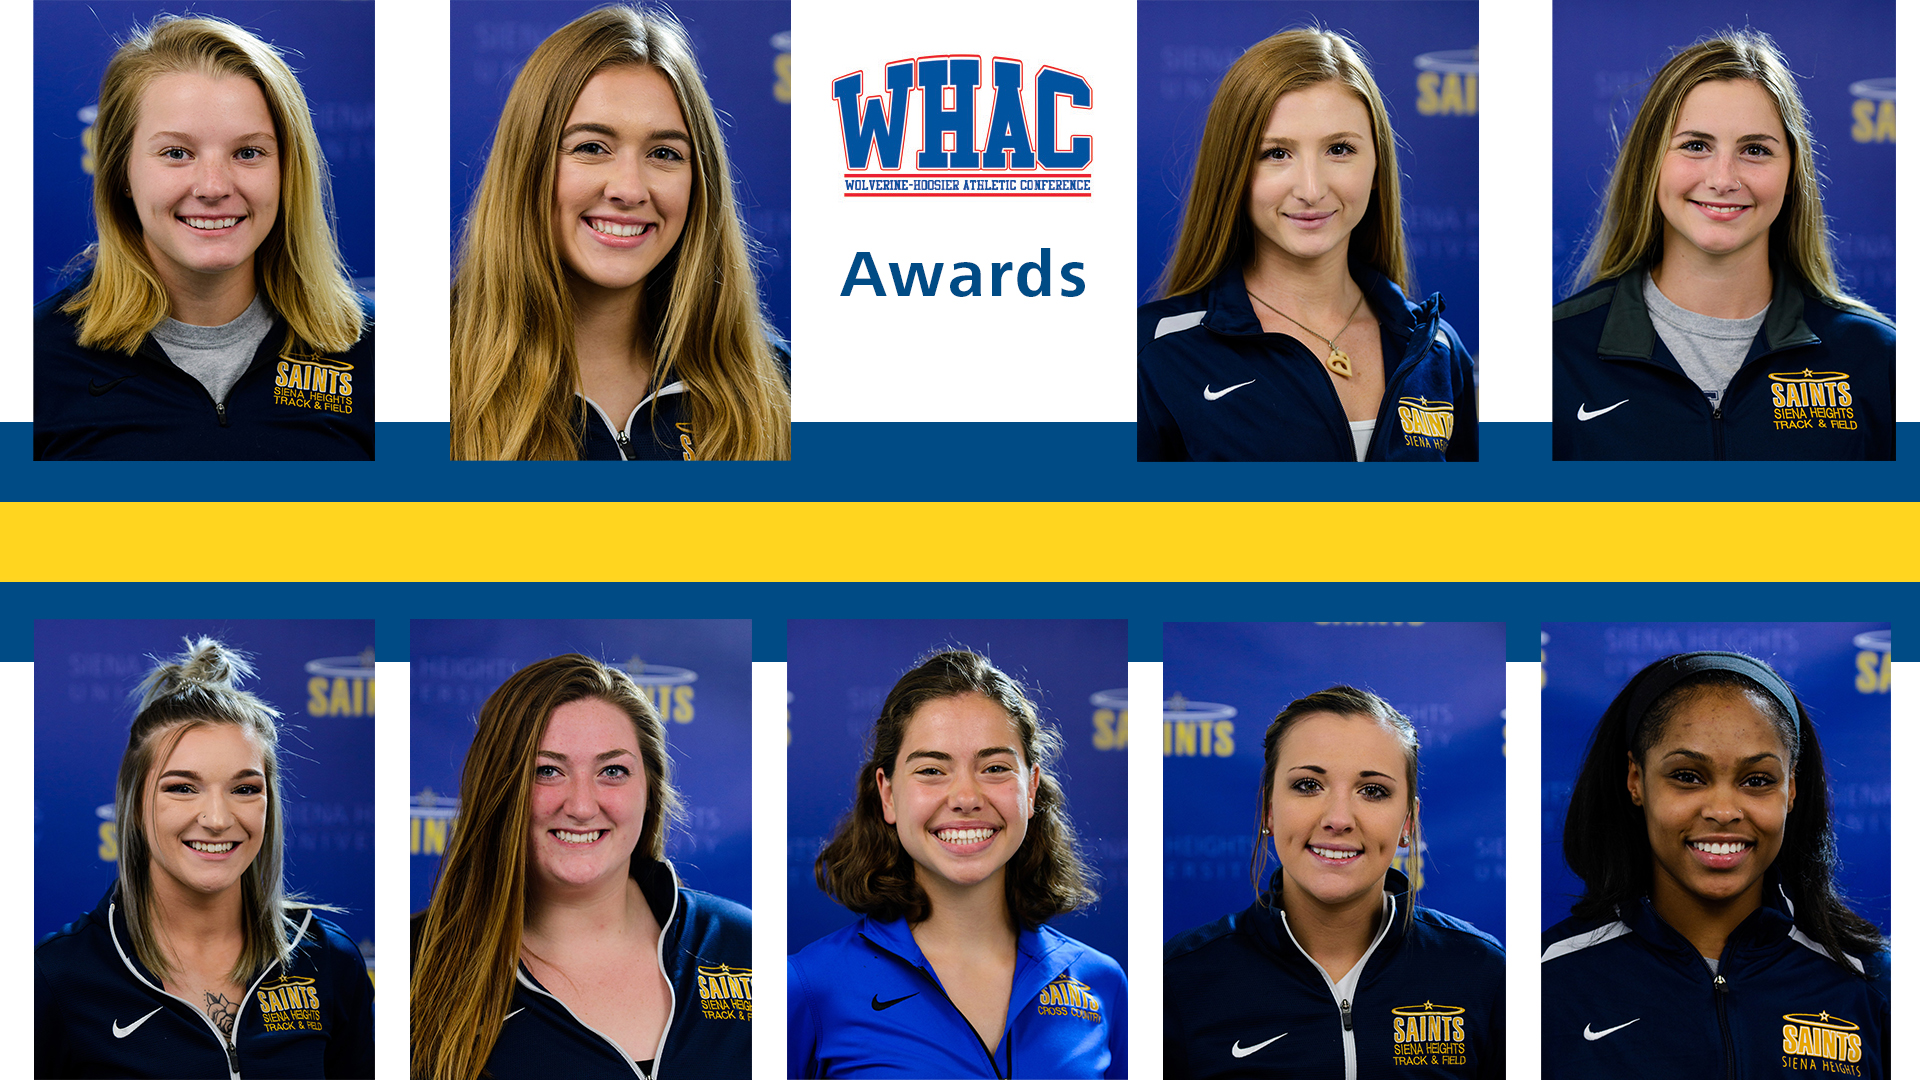 Nine SHU Women's Track and Field Athletes Named in WHAC Awards